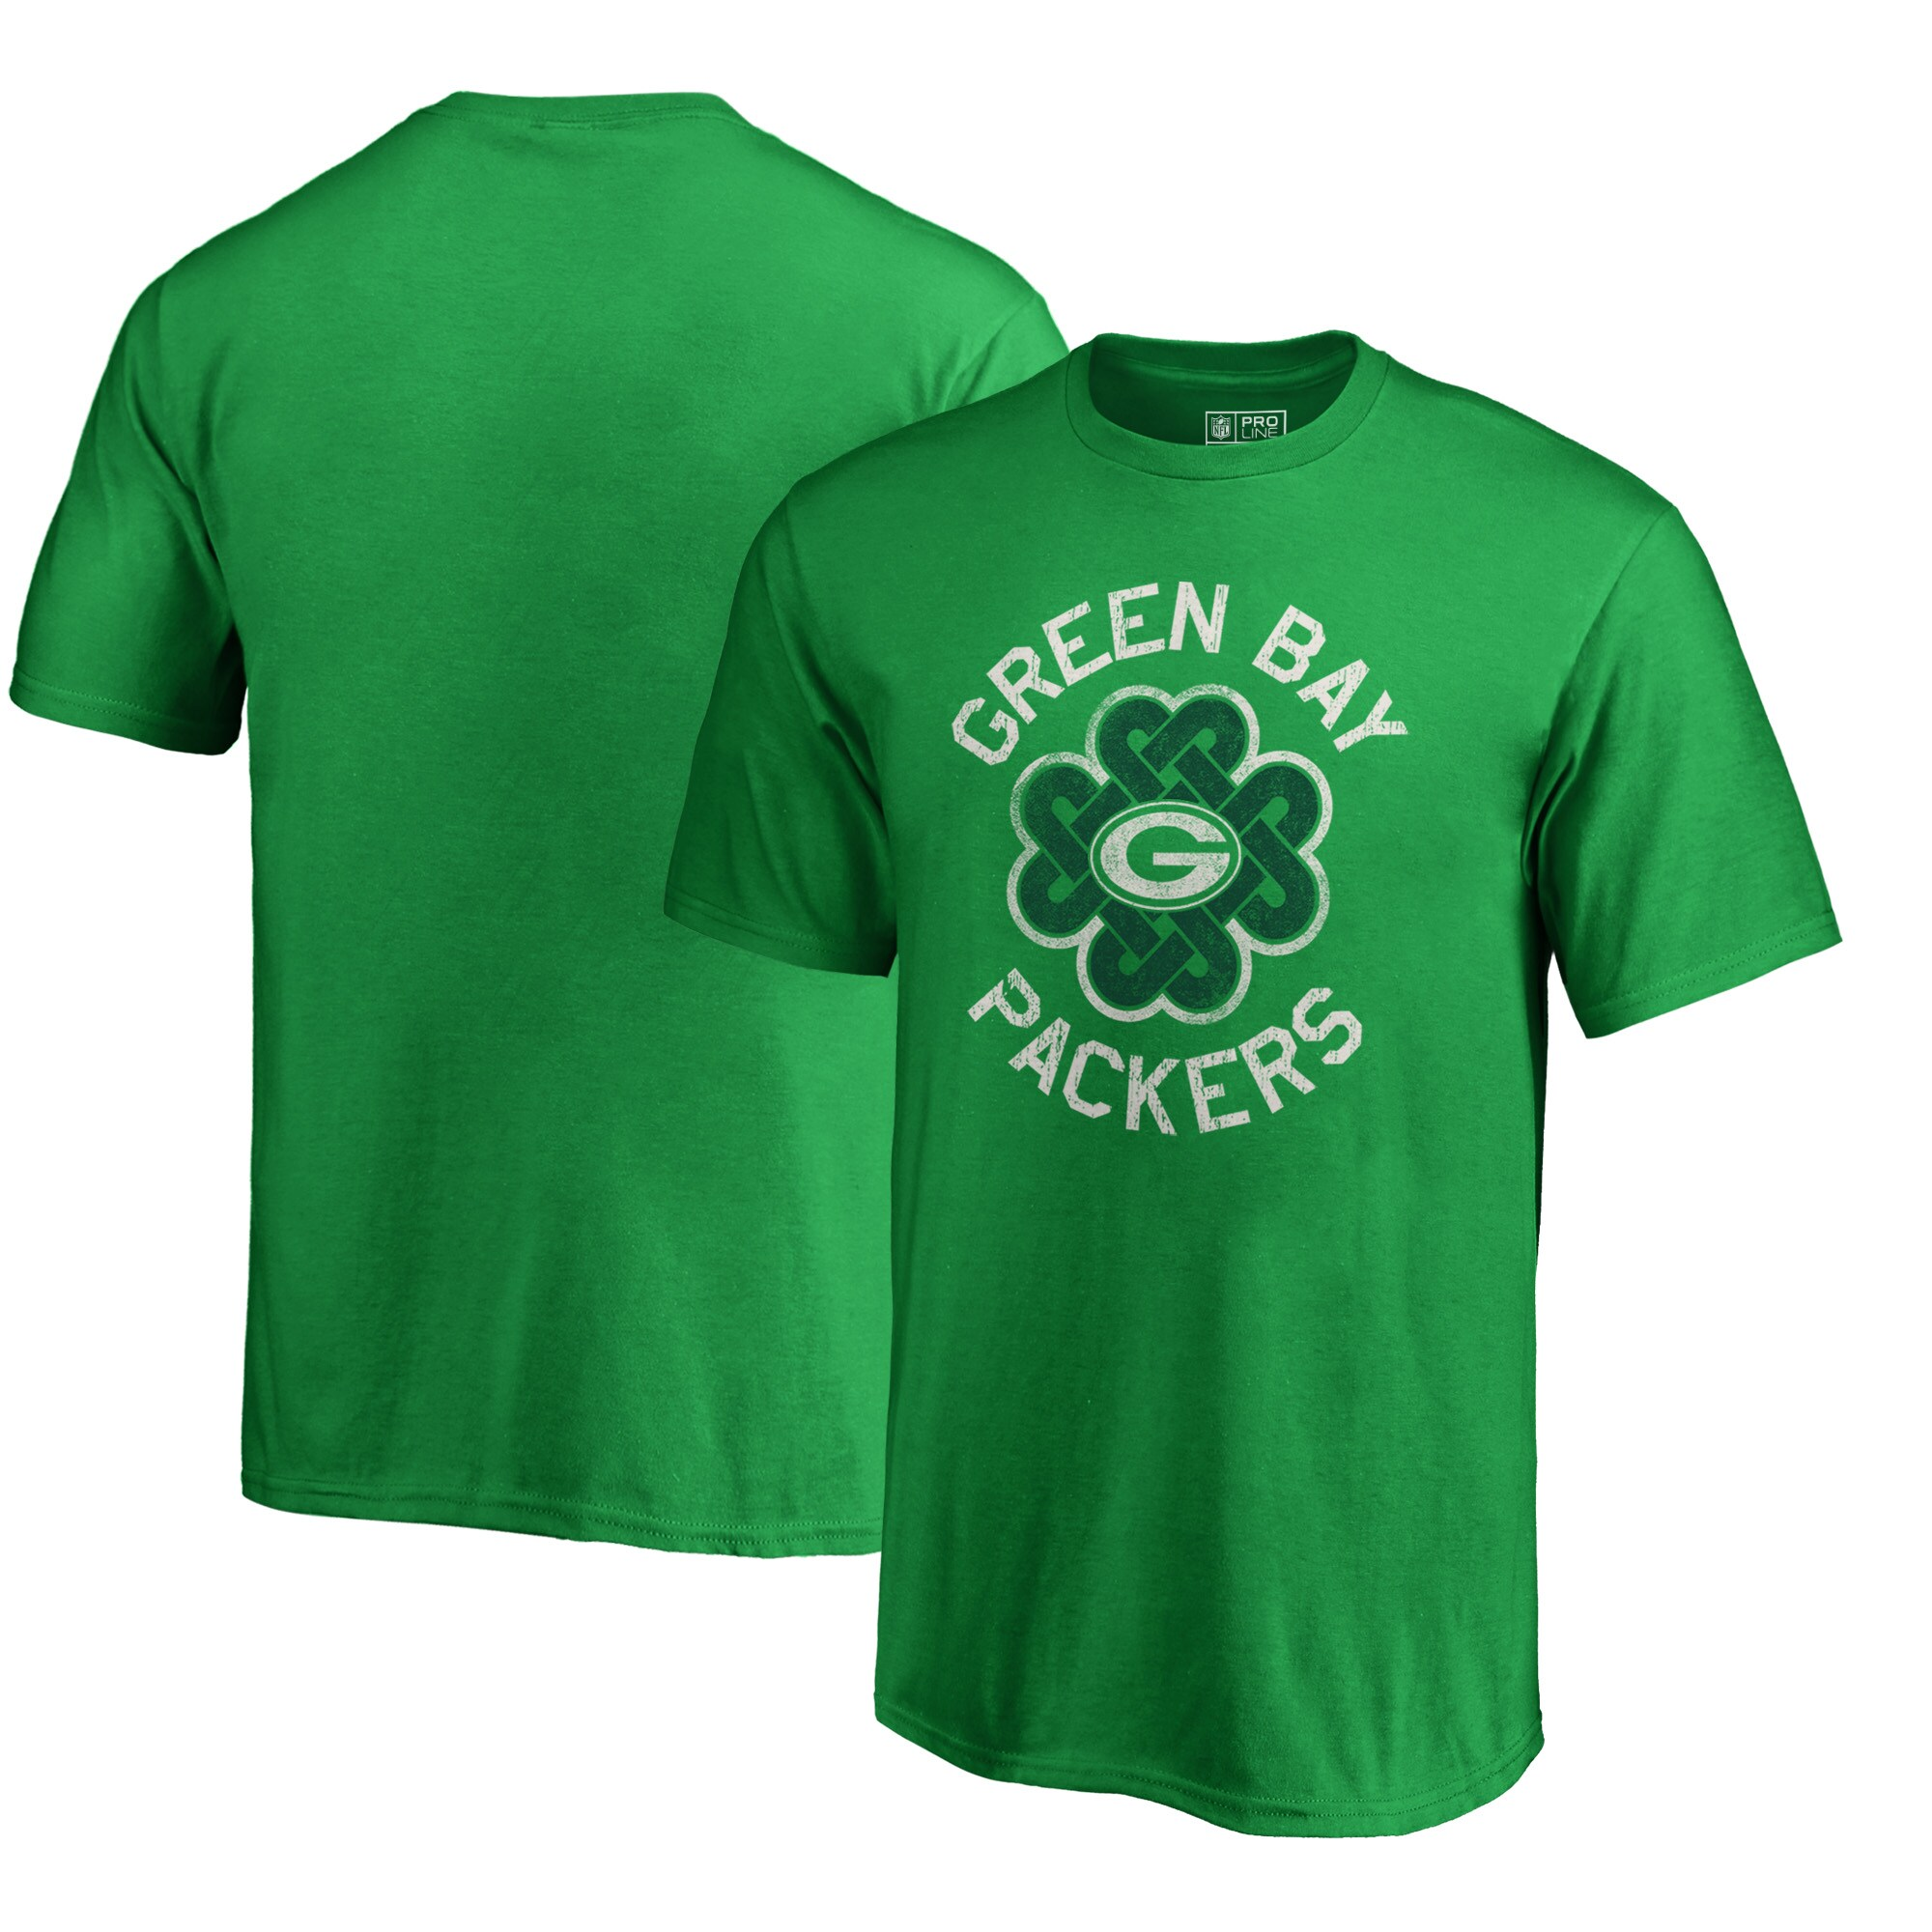 Green Bay Packers NFL Pro Line by Fanatics Branded Youth St. Patrick's Day Luck Tradition T-Shirt - Kelly Green